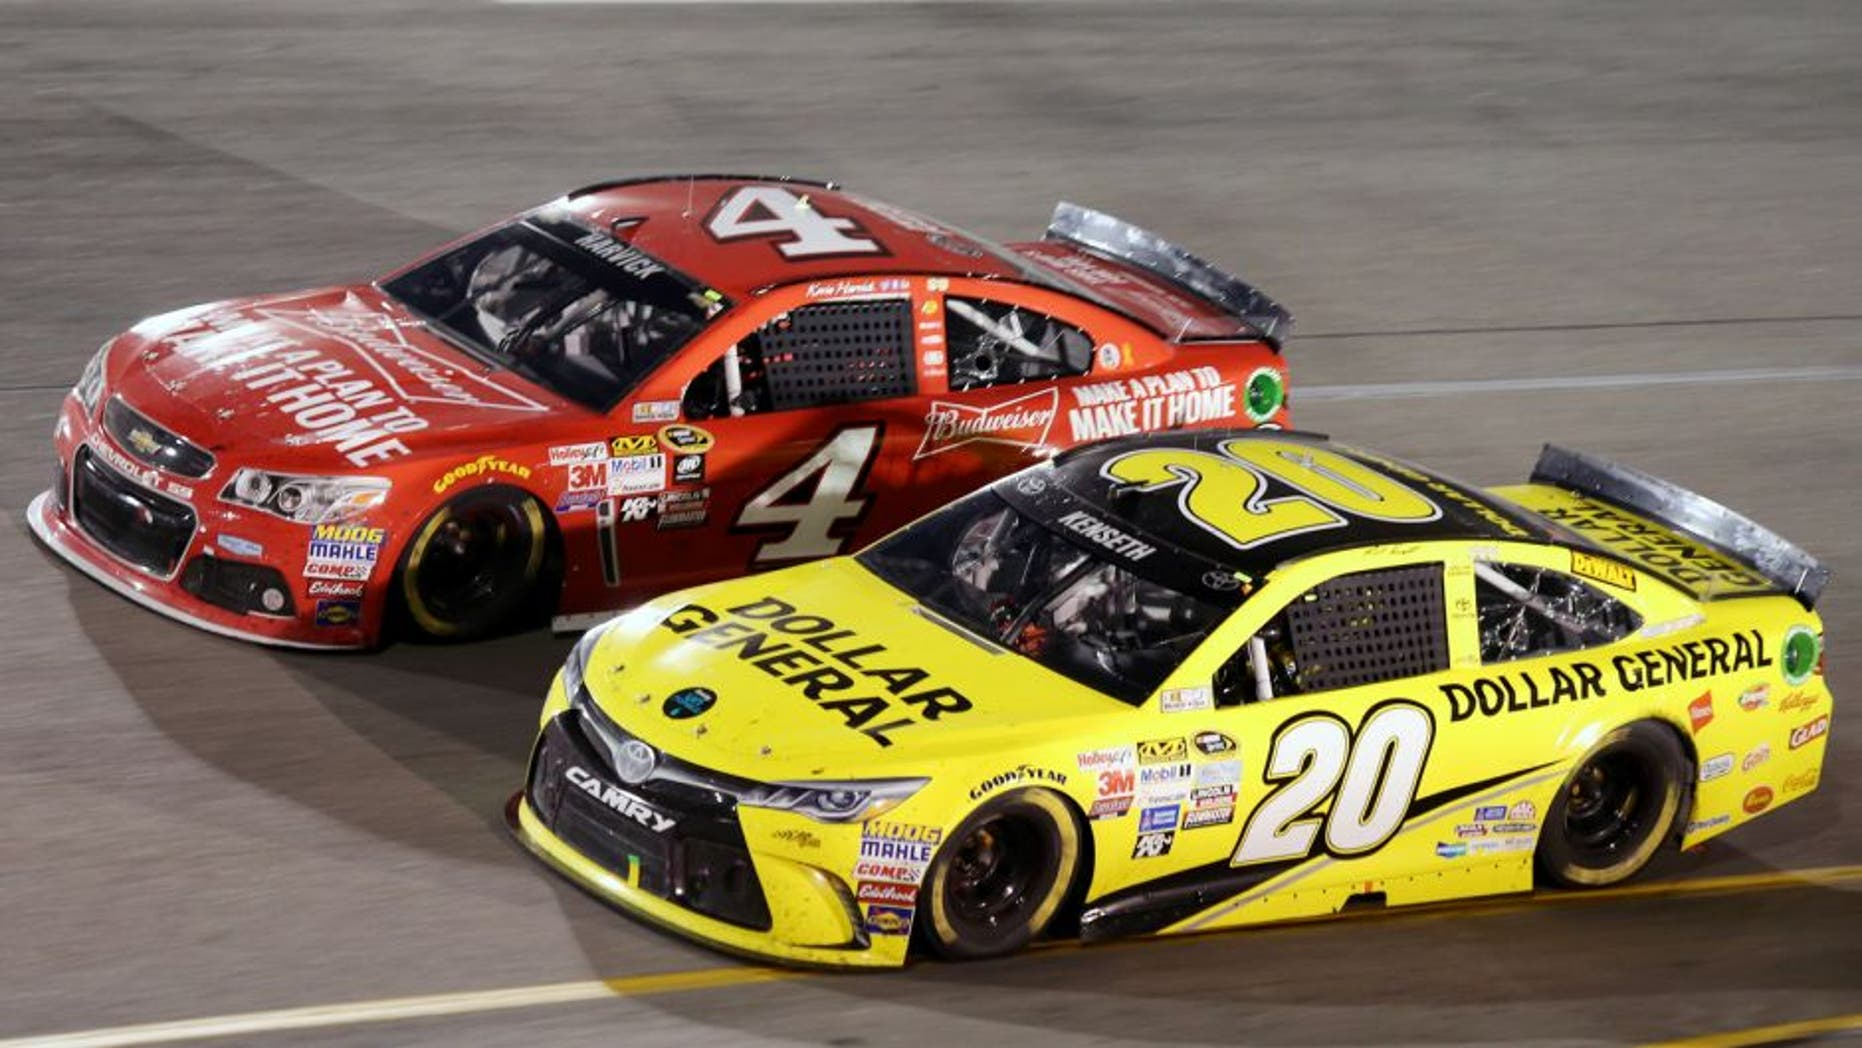 Matt Kenseth, driver of the #20 Dollar General Toyota, races Kevin Harvick, driver of the #4 Budweiser/Jimmy John's Chevrolet, during the NASCAR Sprint Cup Series Federated Auto Parts 400 at Richmond International Raceway on September 12, 2015 in Richmond, Virginia. (Photo by Jerry Markland/Getty Images)